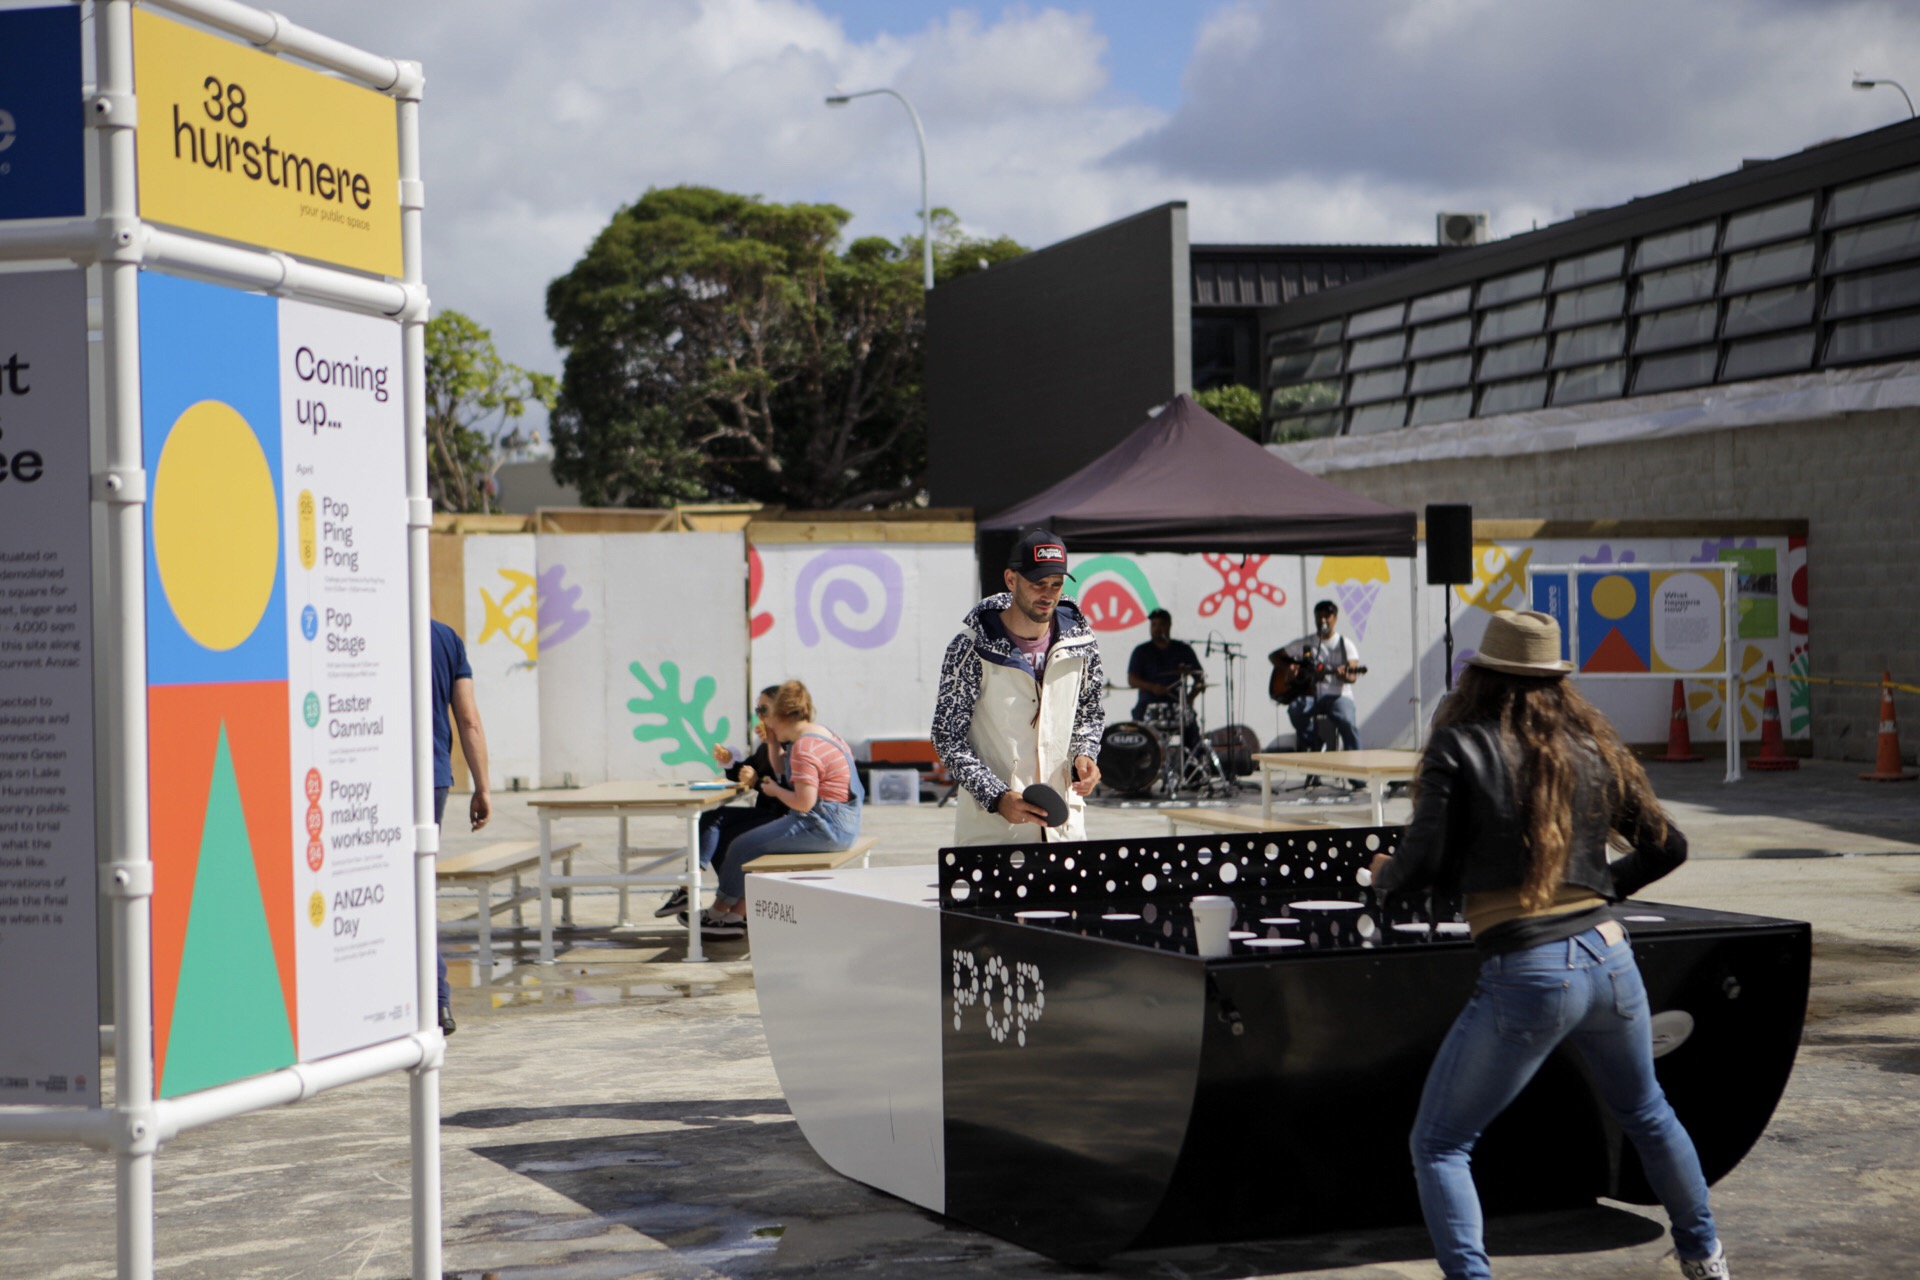 Pop  Ping Pong was one of the first public activities at 38 Hurstmere in April 2019.